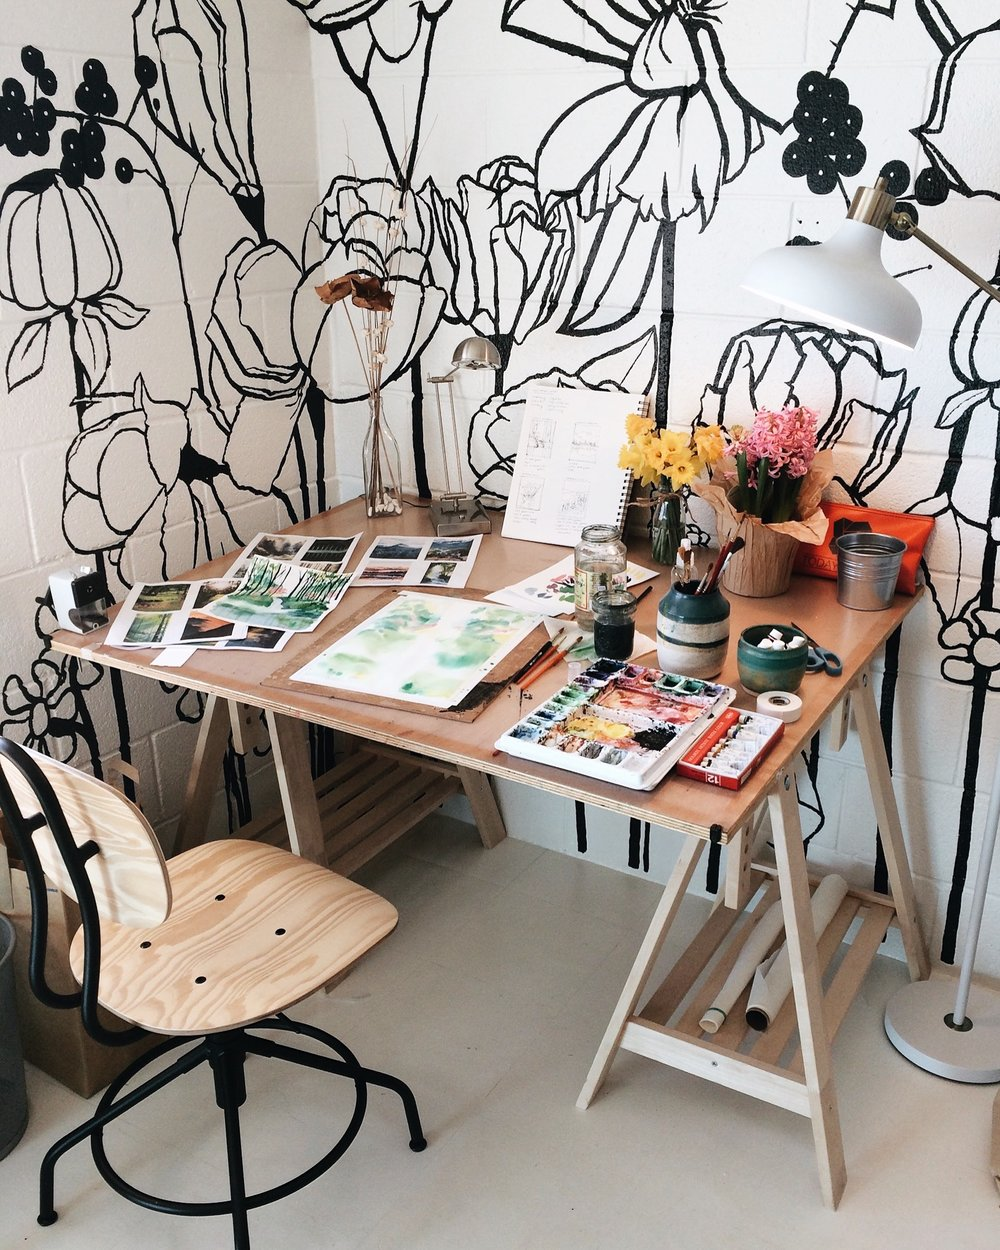 My painting desk. ♥